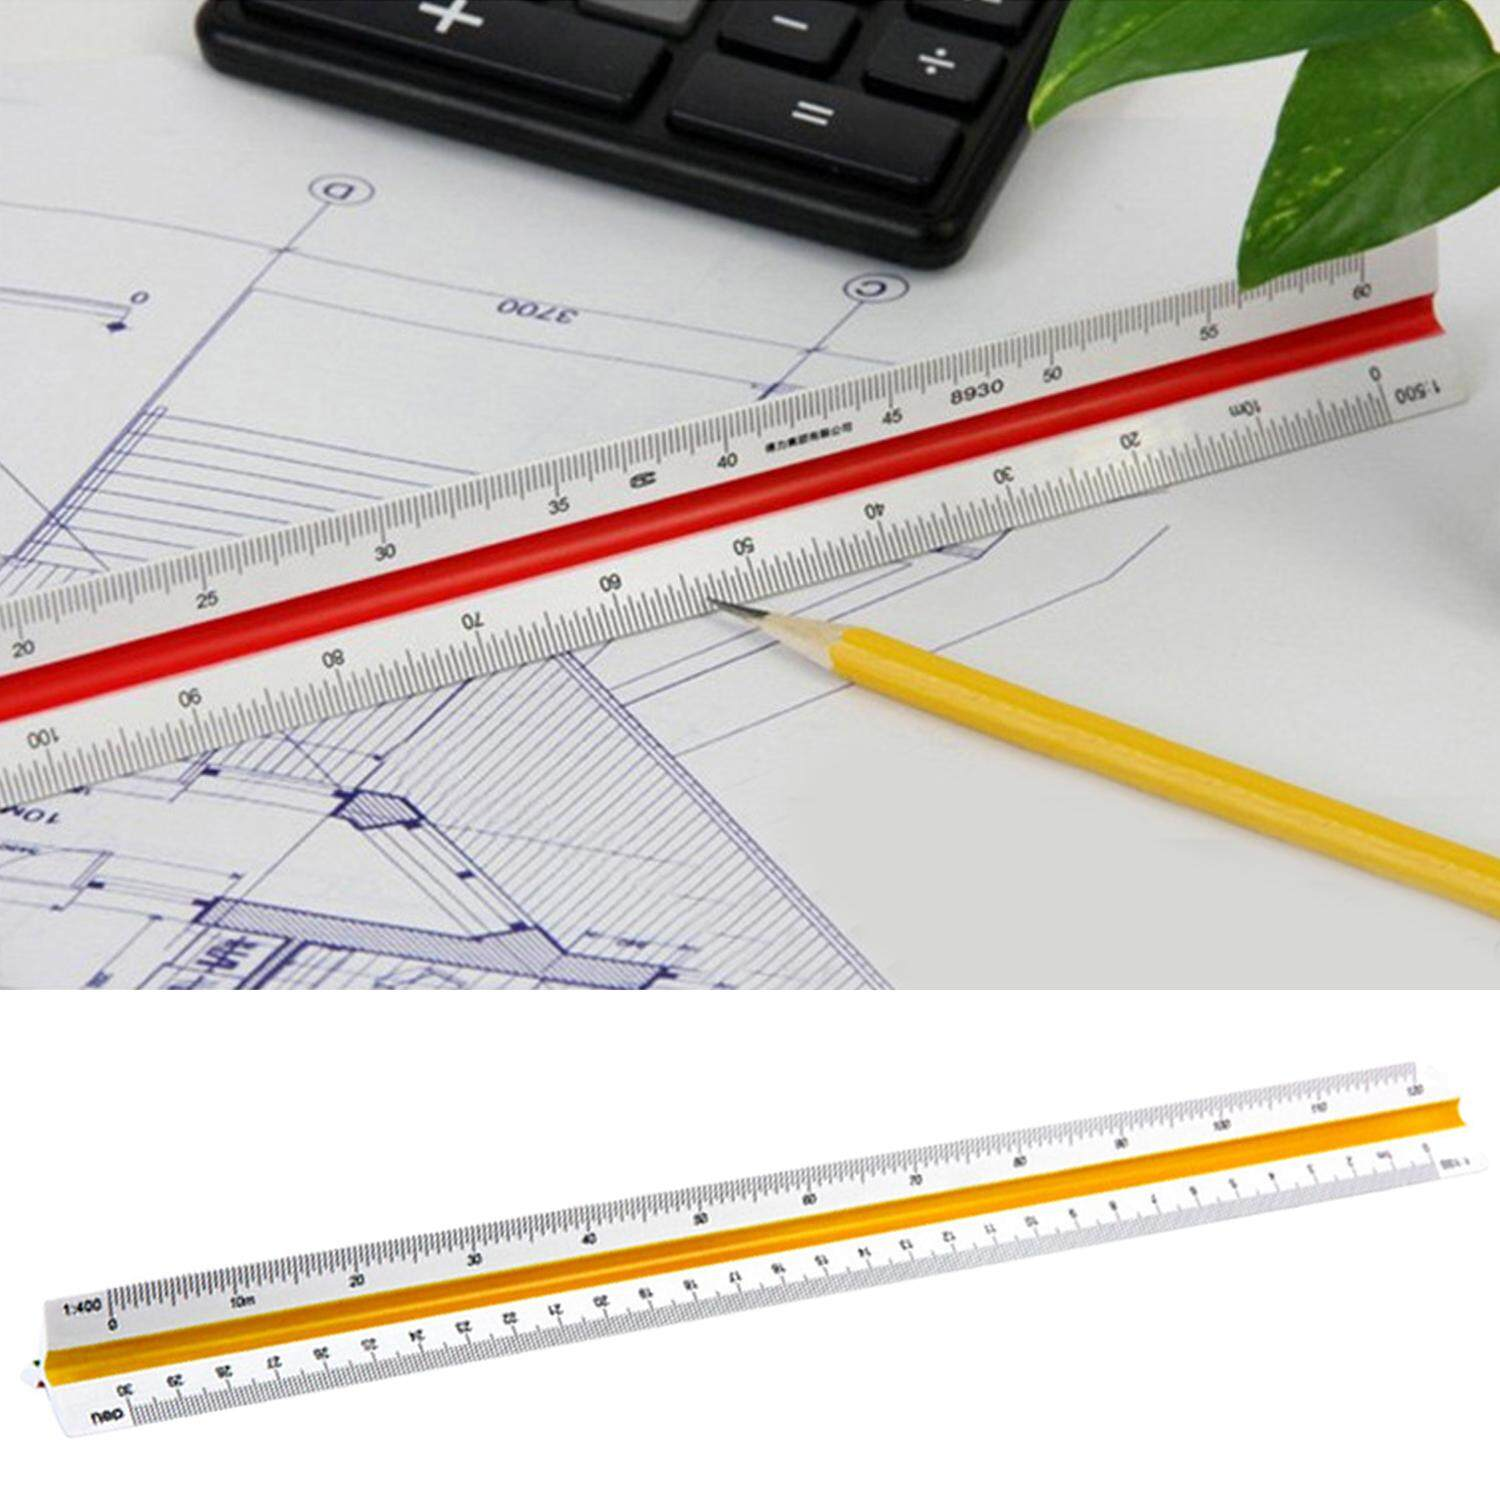 30cm Triangular Architect Scale Ruler Ideal For Architects Engineers Draftsman And Students - intl